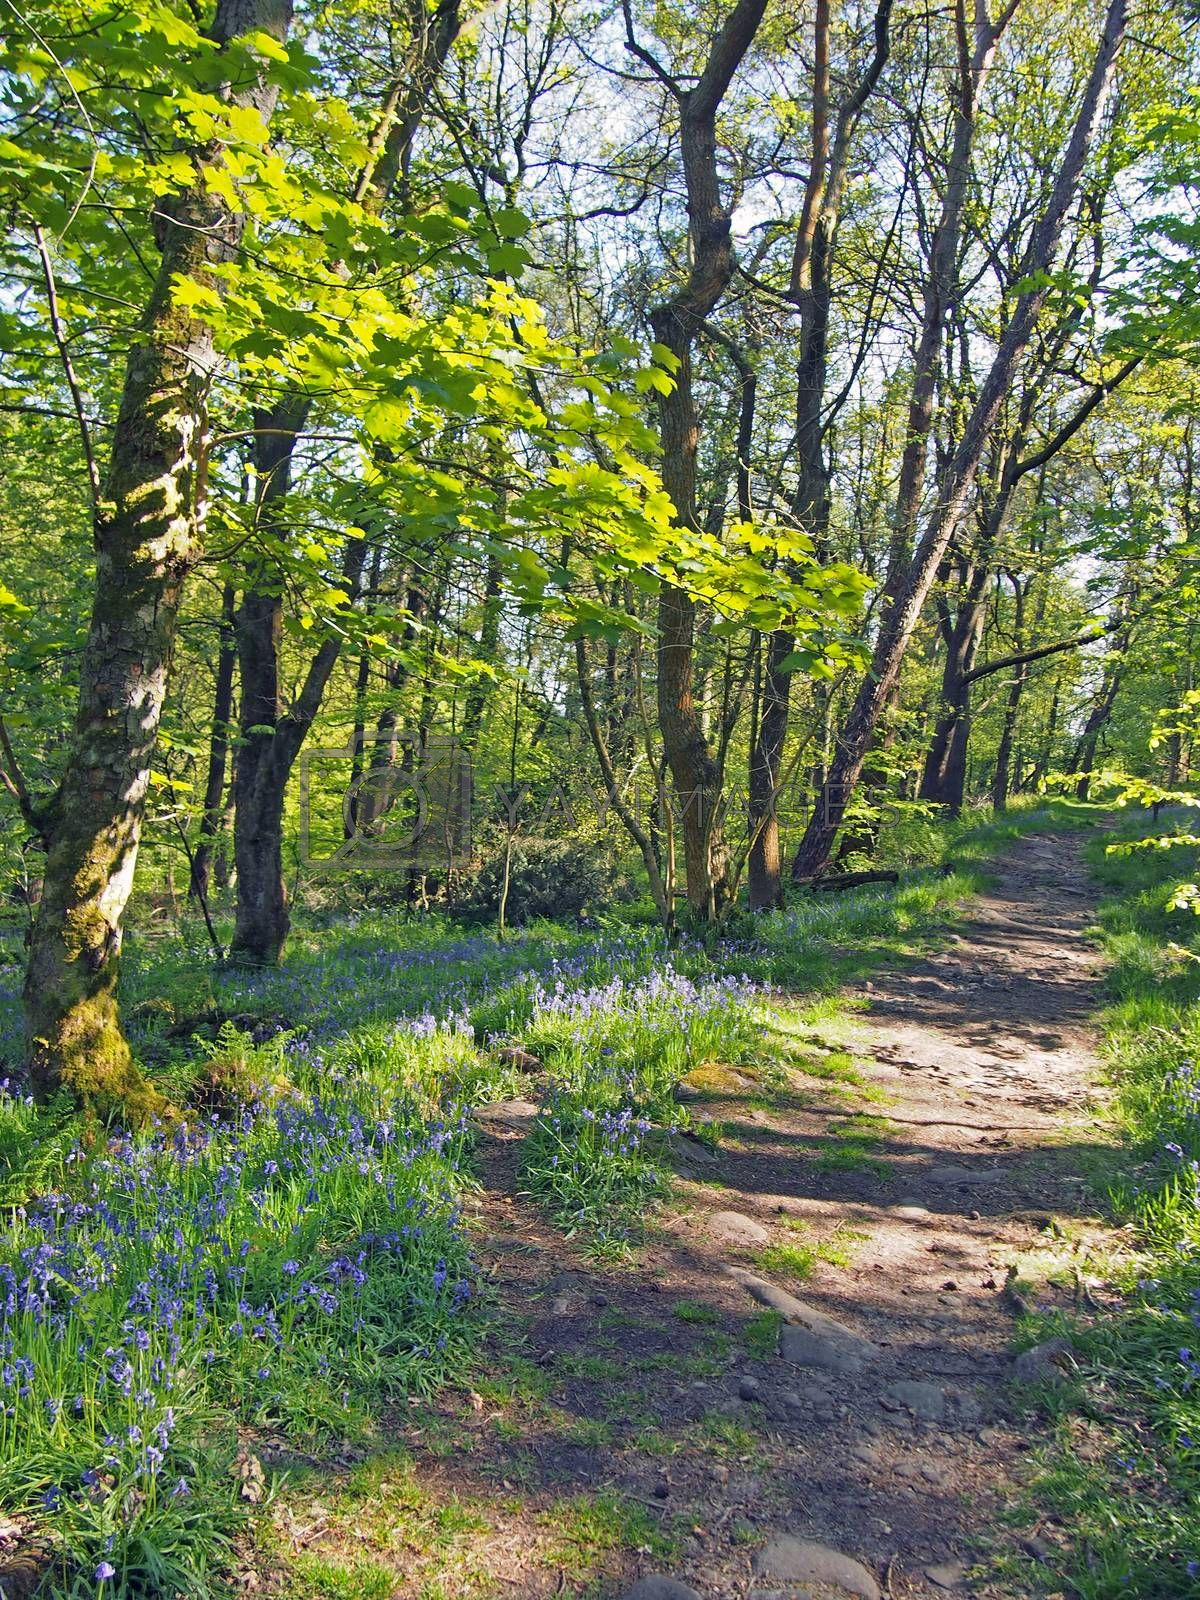 a woodland path running though a carpet of wild english bluebells and vibrant spring beech trees in bright sunlight